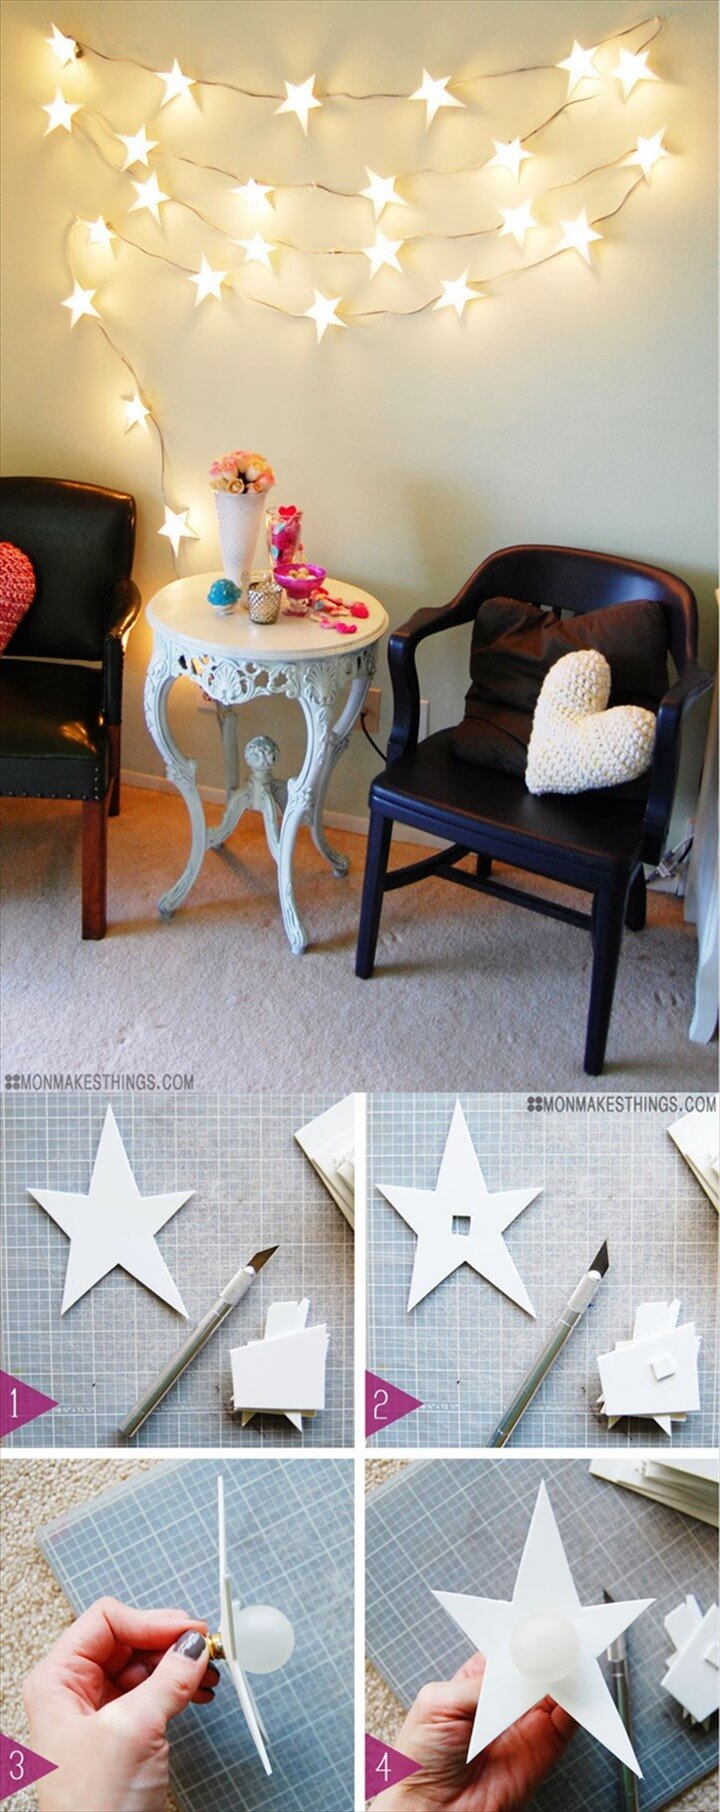 String Light DIY ideas for Cool Home Decor Star Garland Christmas Light DIY are Fun